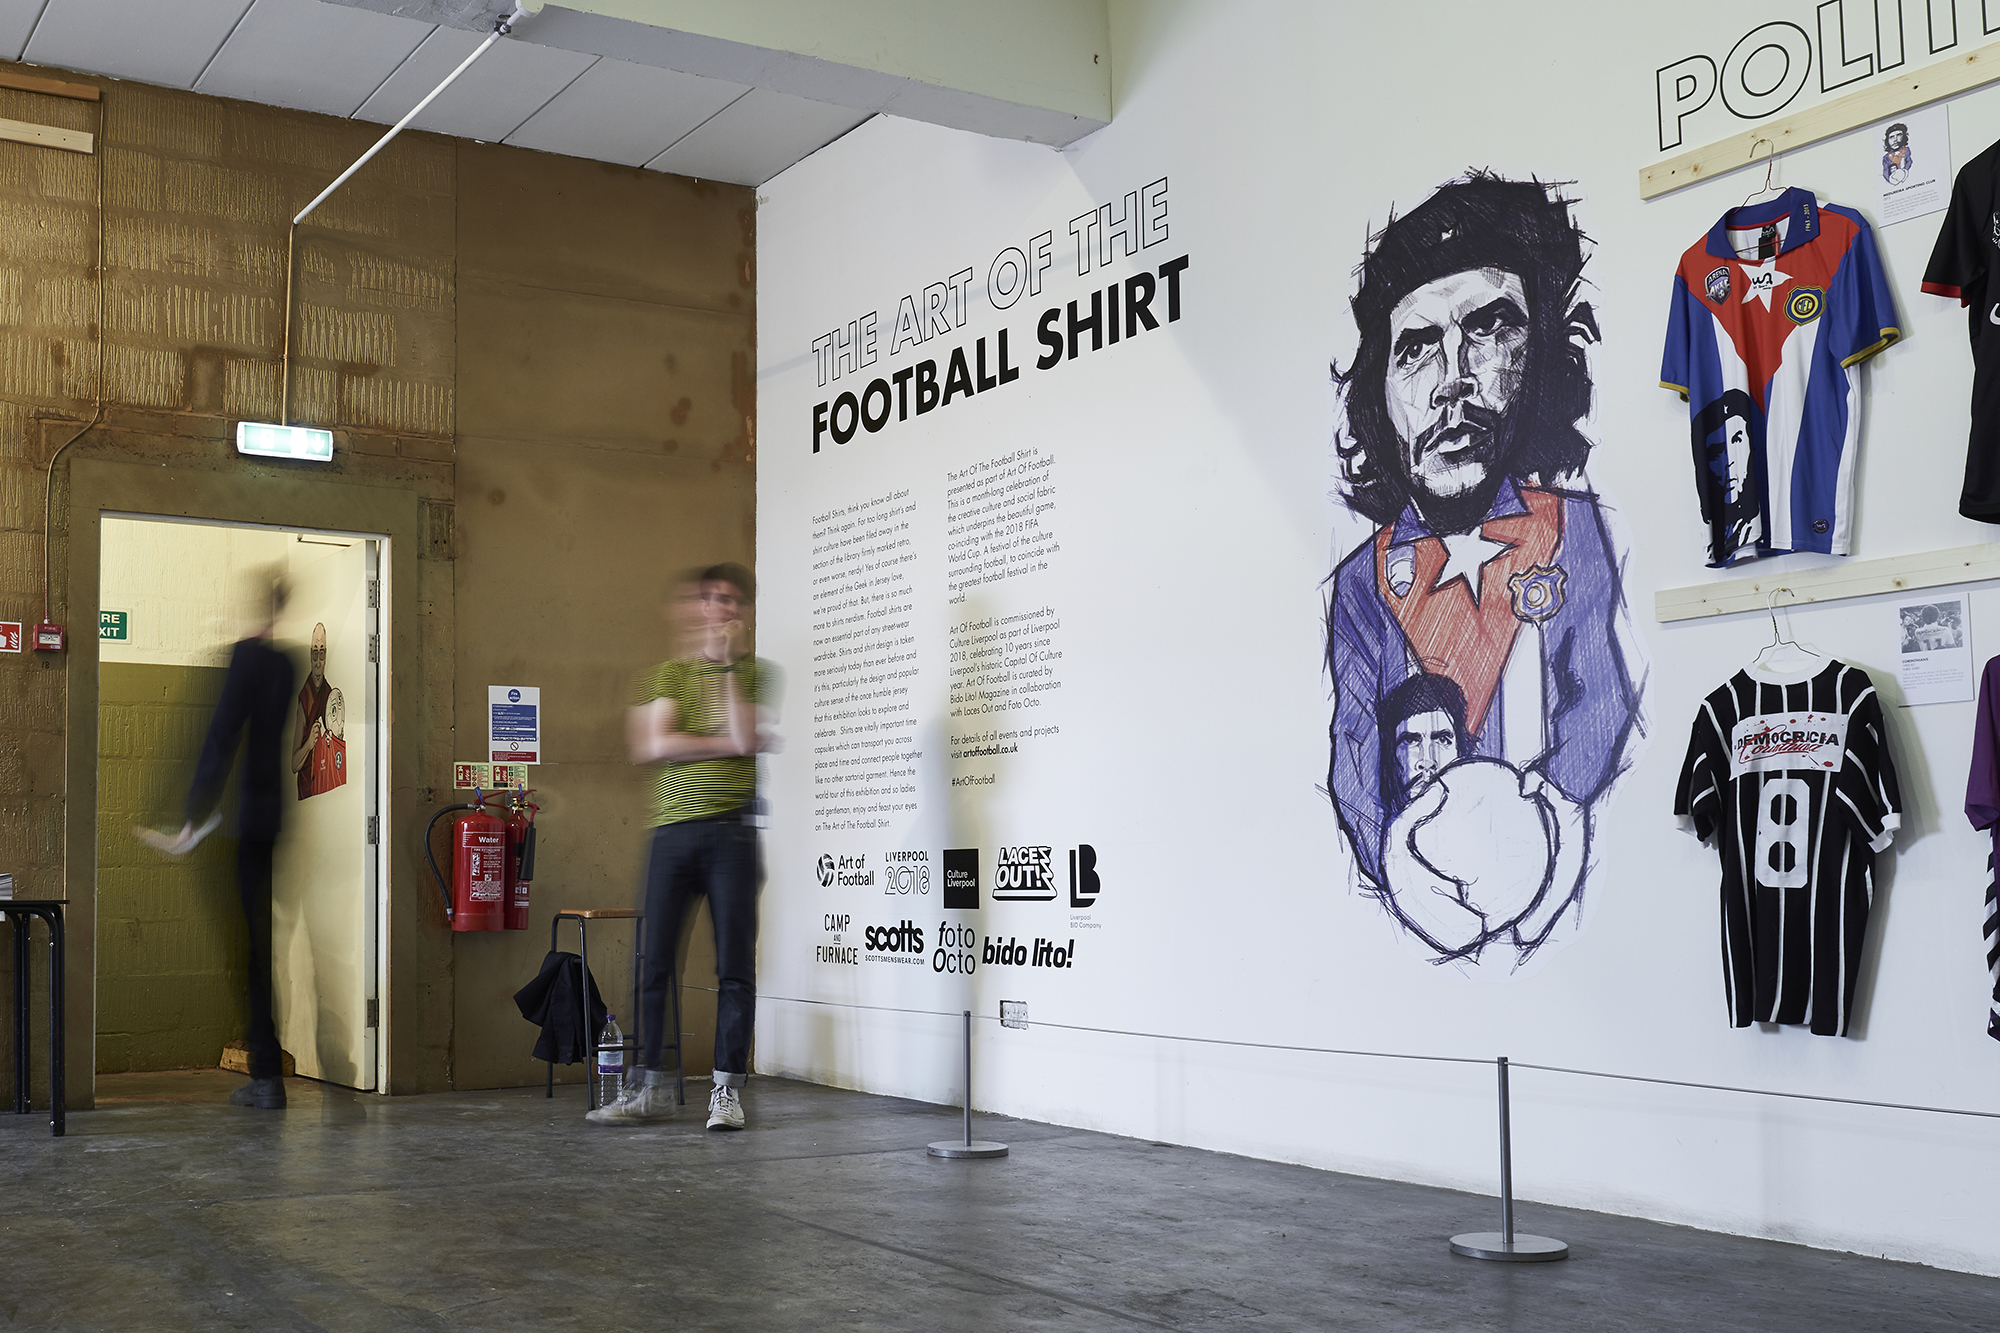 The Art Of The Football Shirt - Liverpool